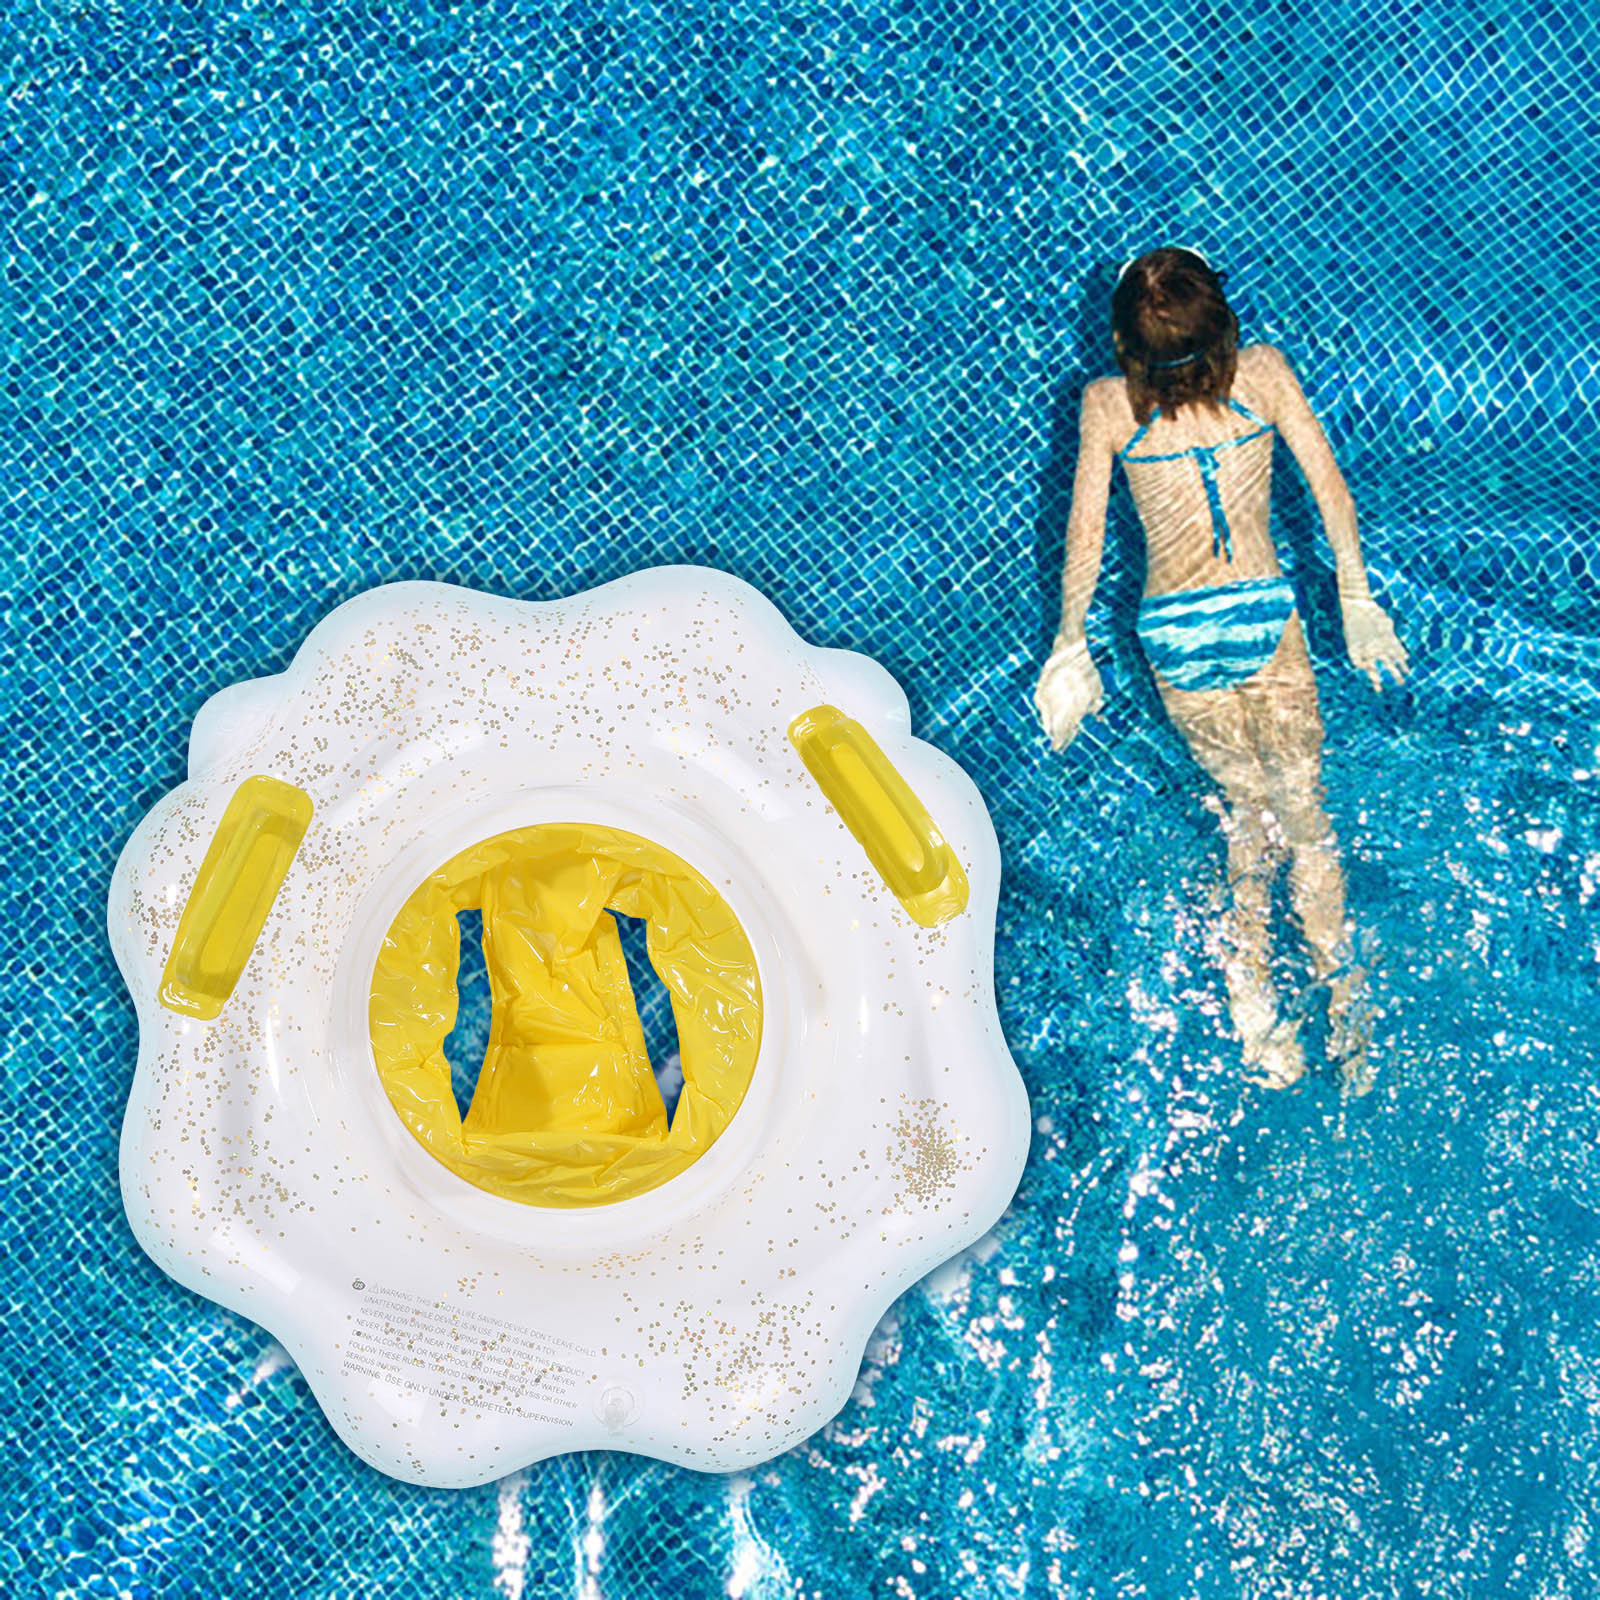 Cloud Swimming Ring for Kids PVC Inflatable Swimming Ring Summer Outdoor Swimming Pool Floats Kids Swimming Toys 70x80cm